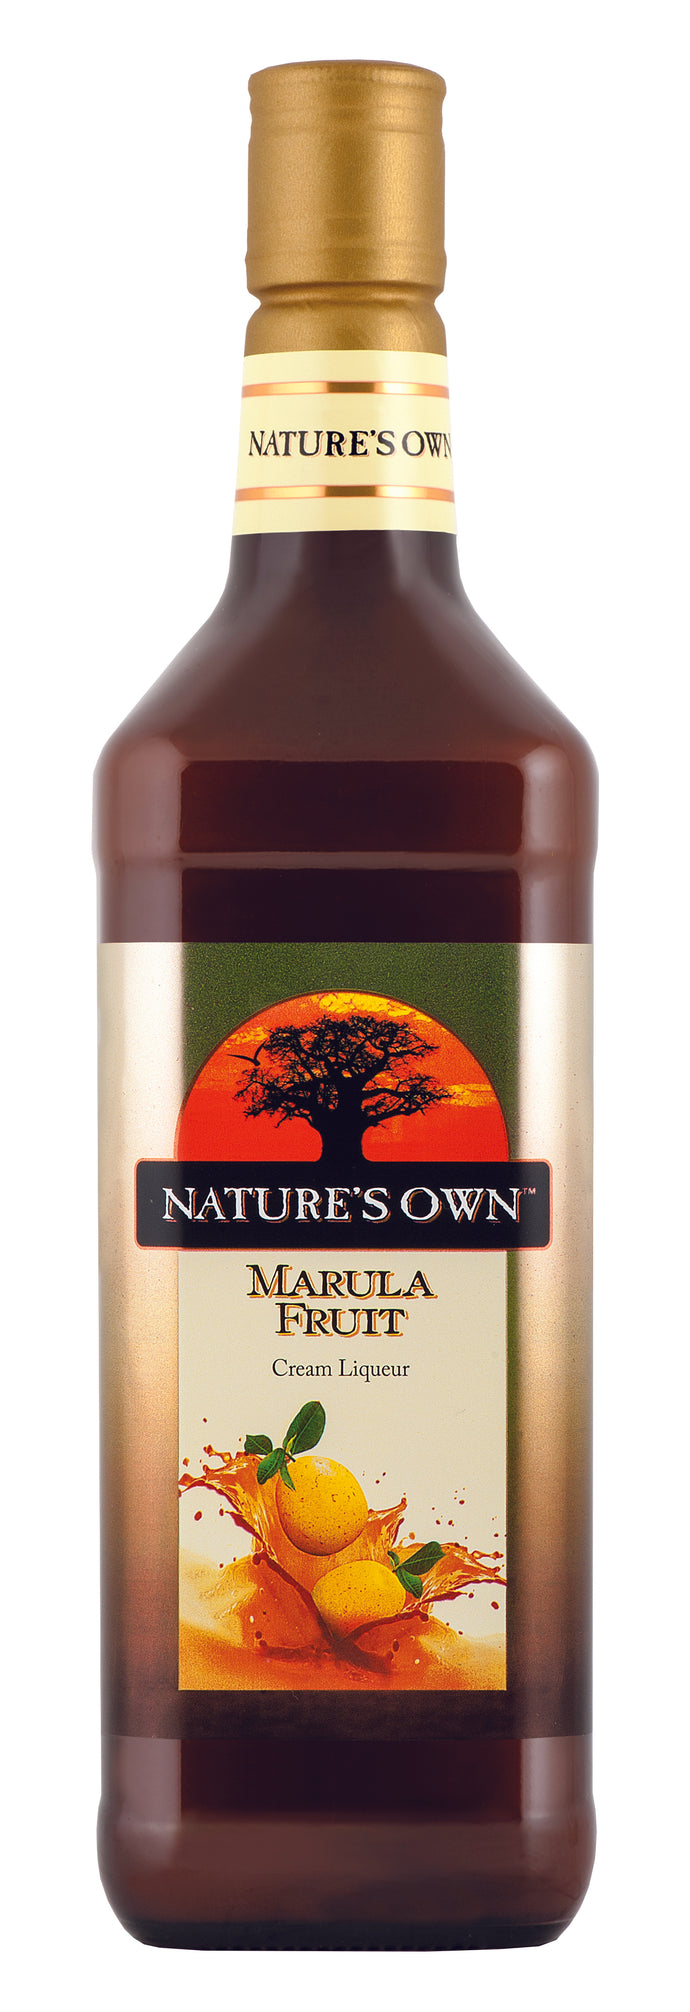 Nature's Own Marula Fruit Cream Liqueur